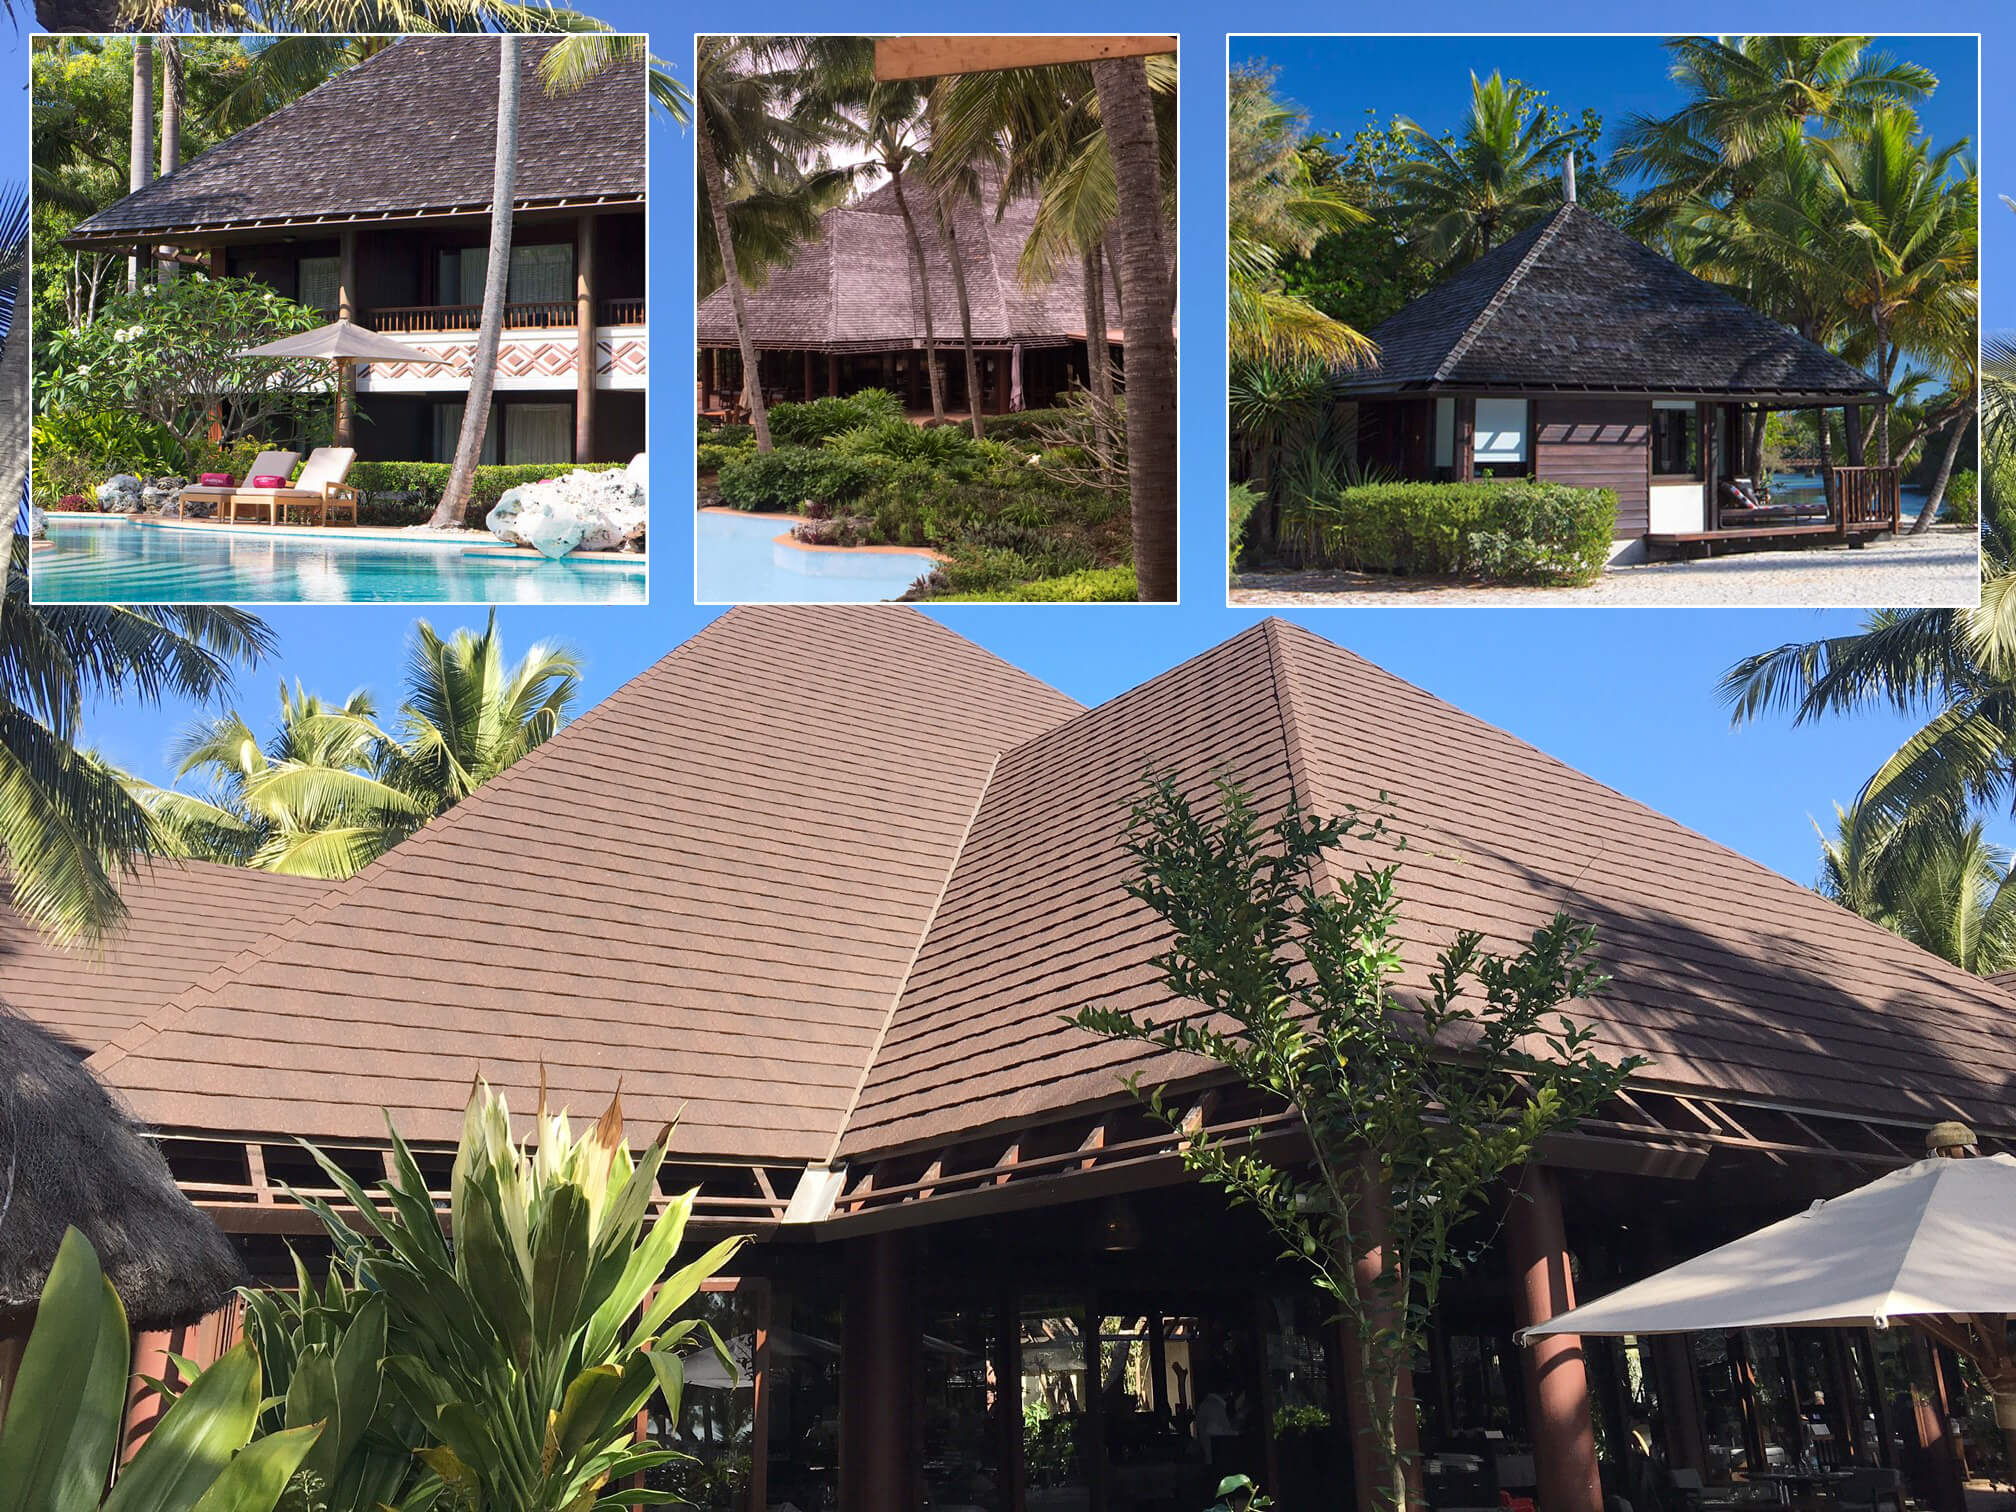 re-roofing-in-paradise-4.jpg